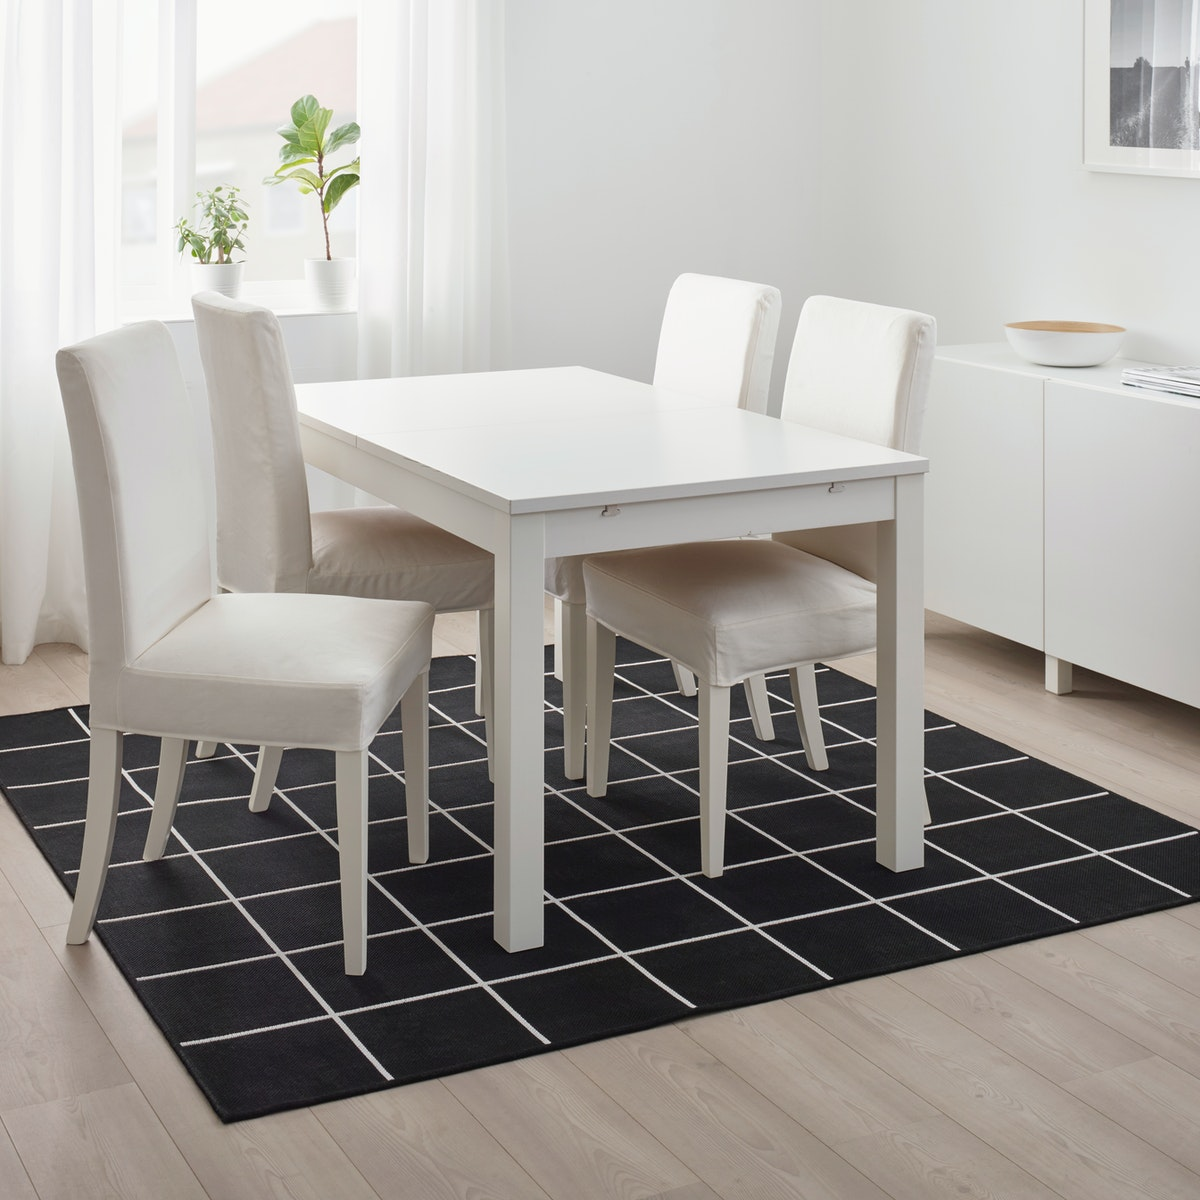 Dining Tables Set Ikea Indonesia